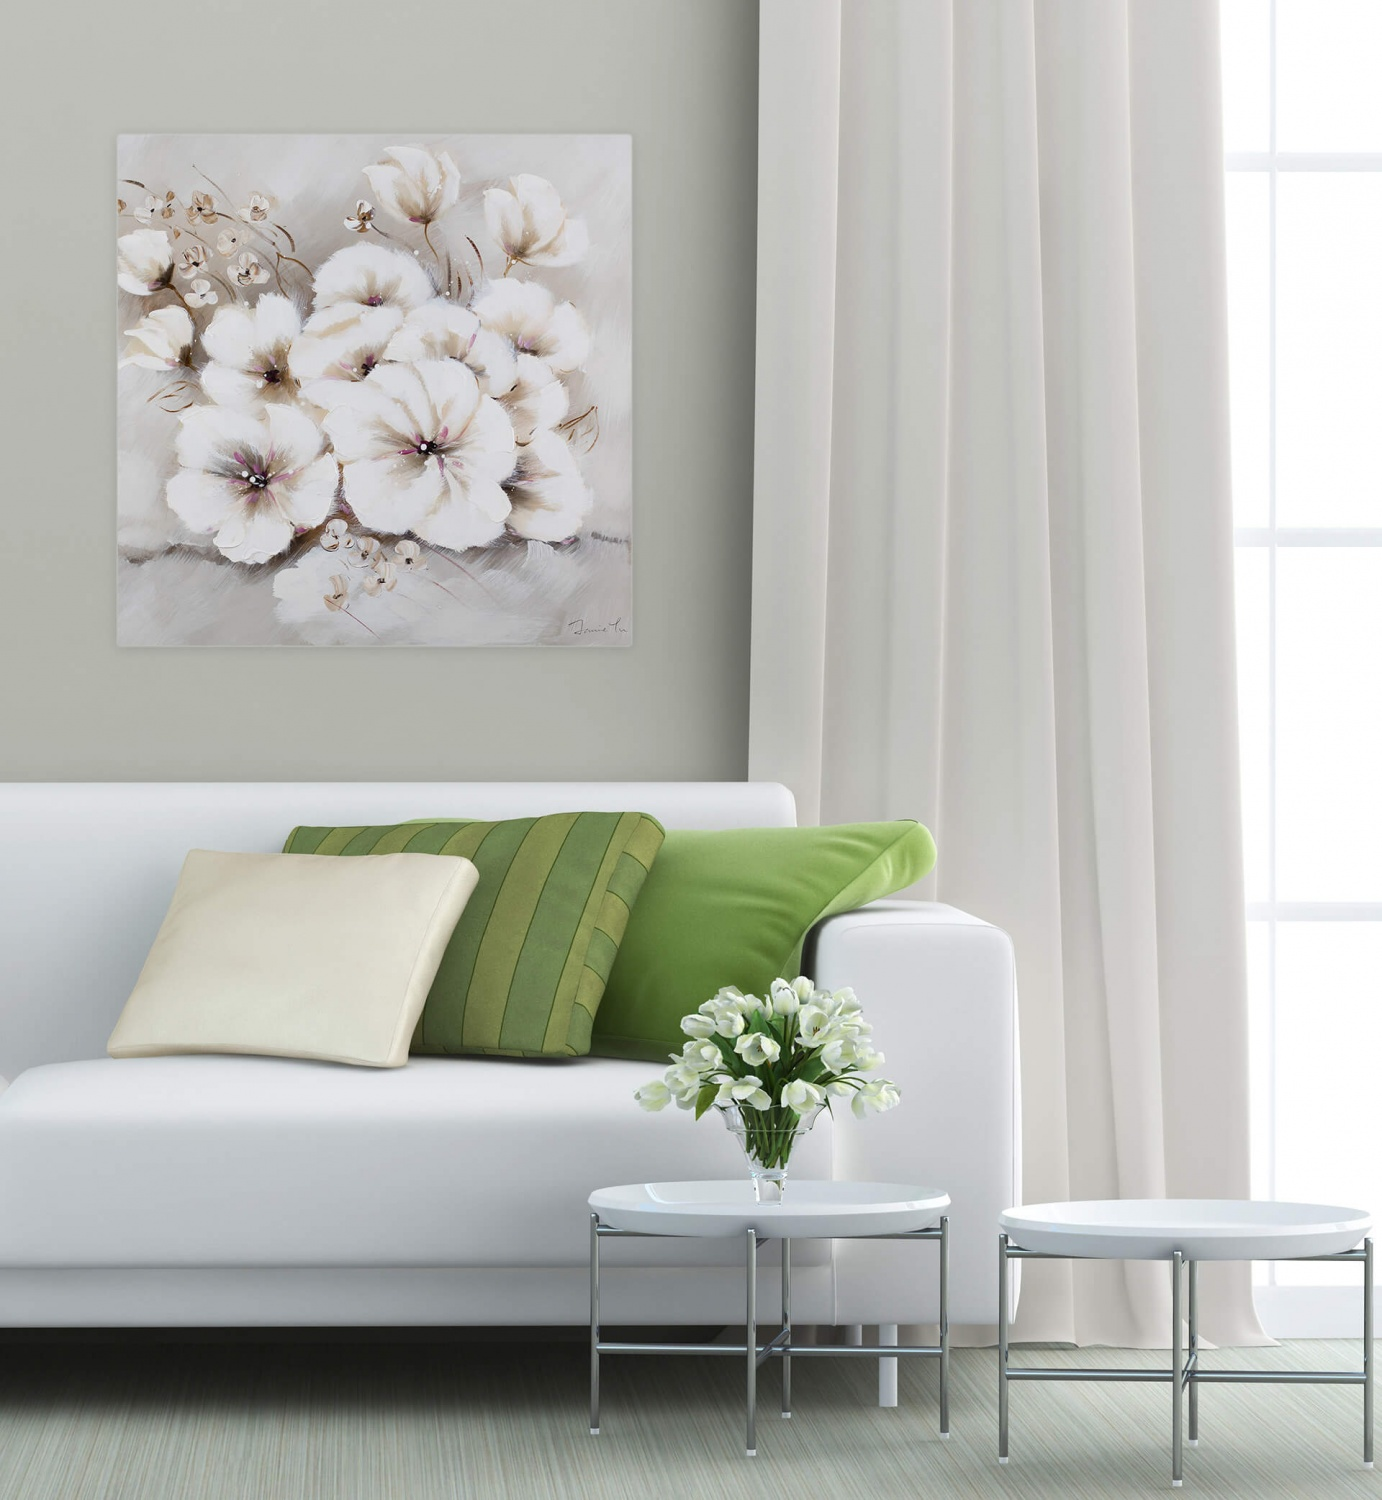 acryl gem lde 39 blumen natur beige 39 handgemalt leinwand bilder 80x80cm ebay. Black Bedroom Furniture Sets. Home Design Ideas